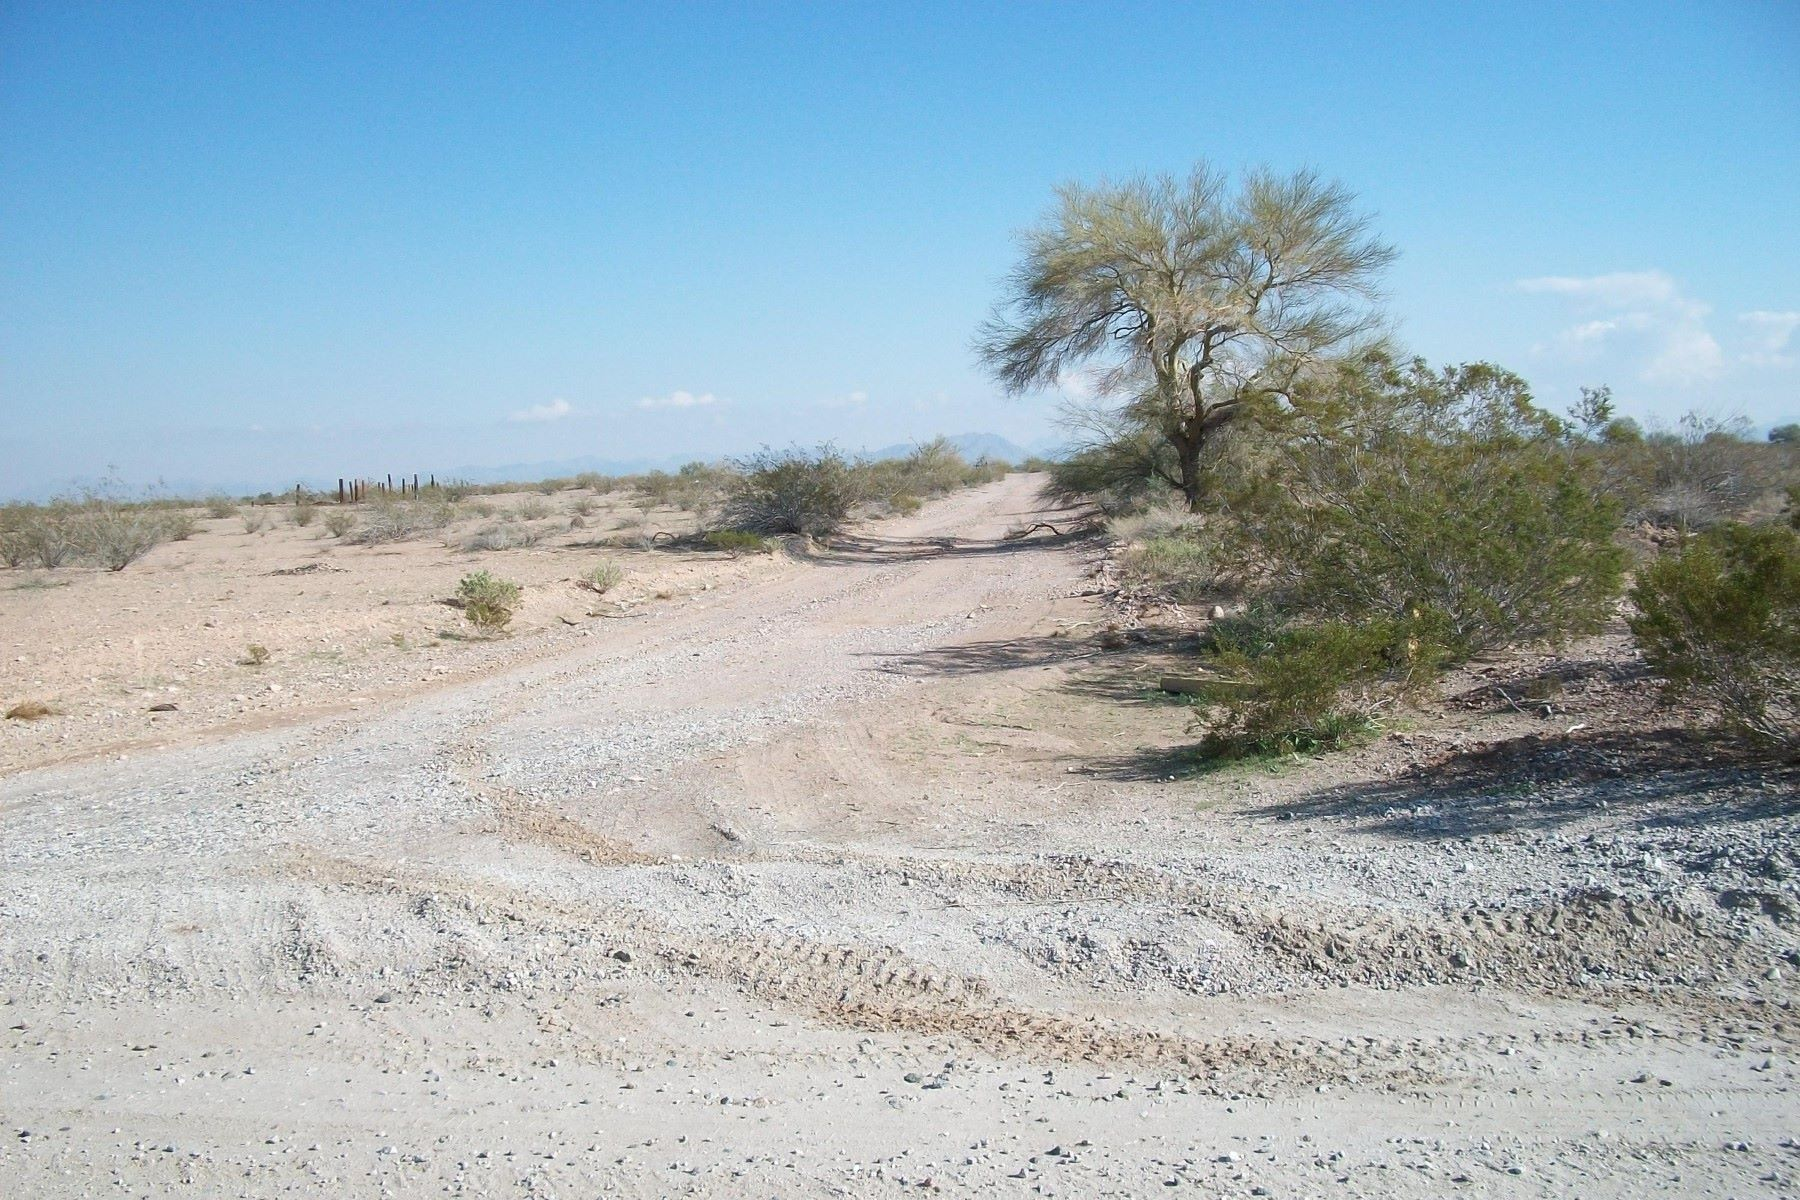 Land for Active at 70 acres of vacant industrial urban land 0 CEMETARY RD N/A Gila Bend, Arizona 85337 United States